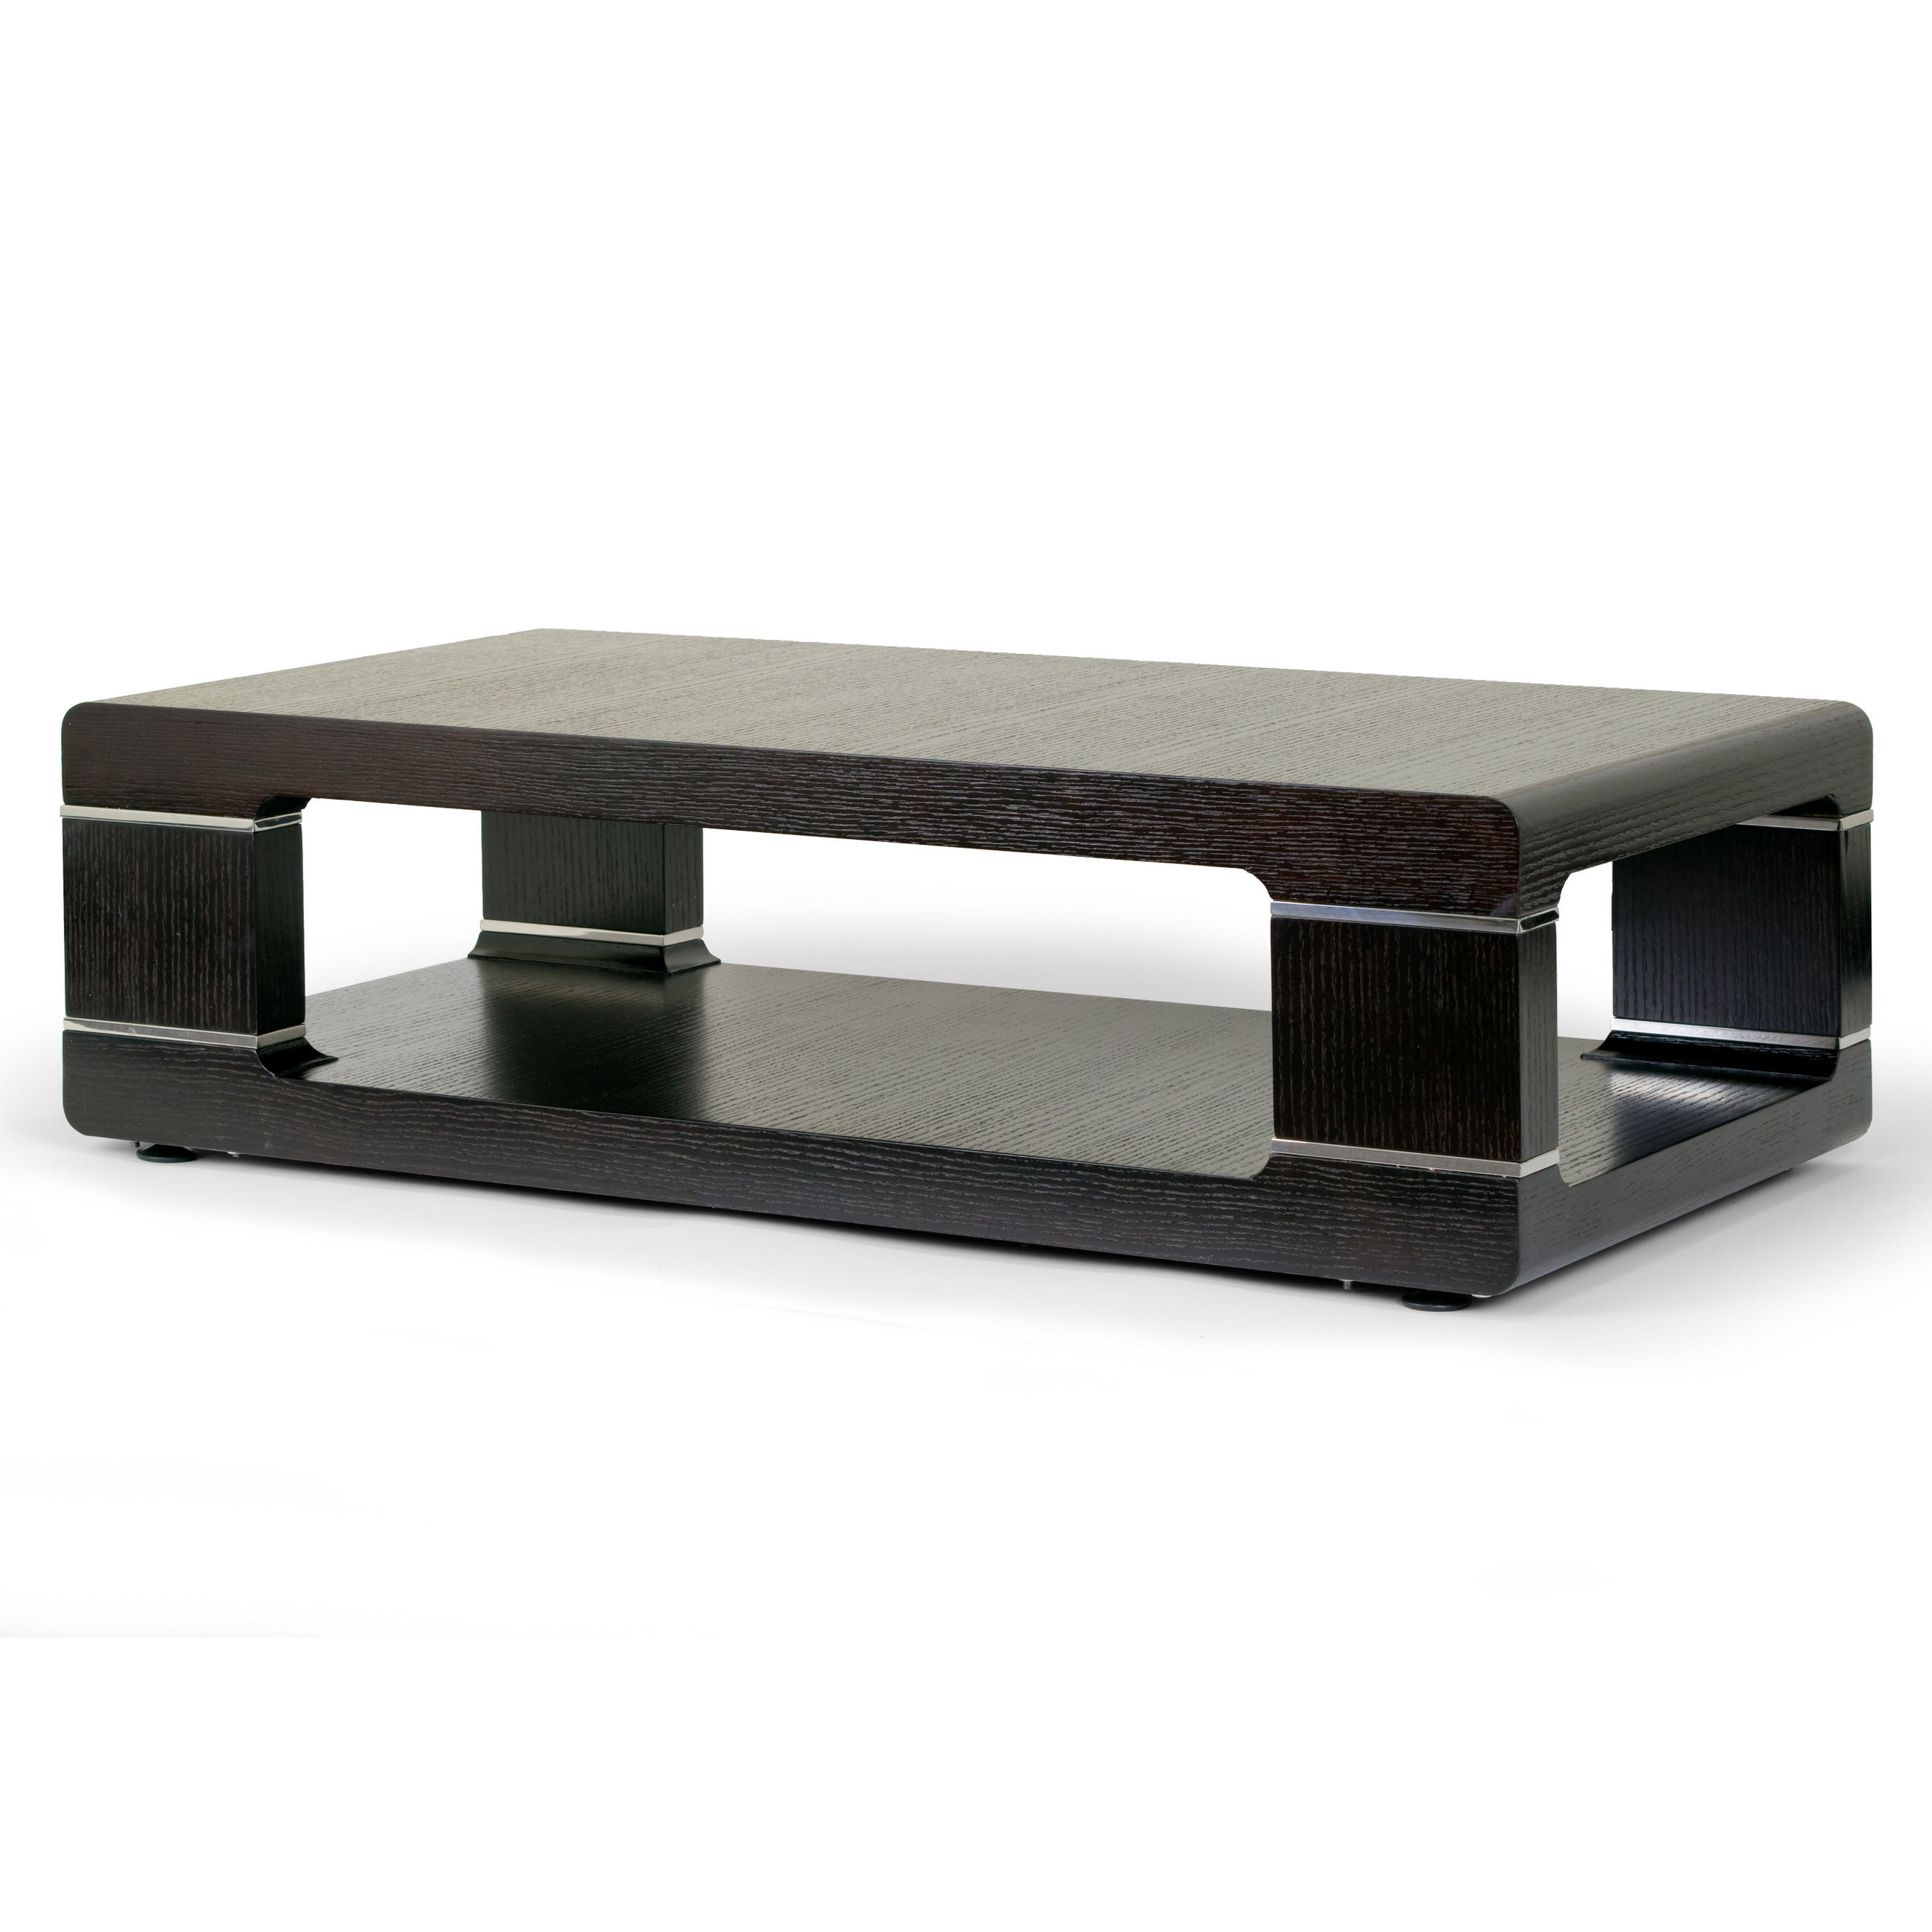 Lovely 3 Tier Coffee Table